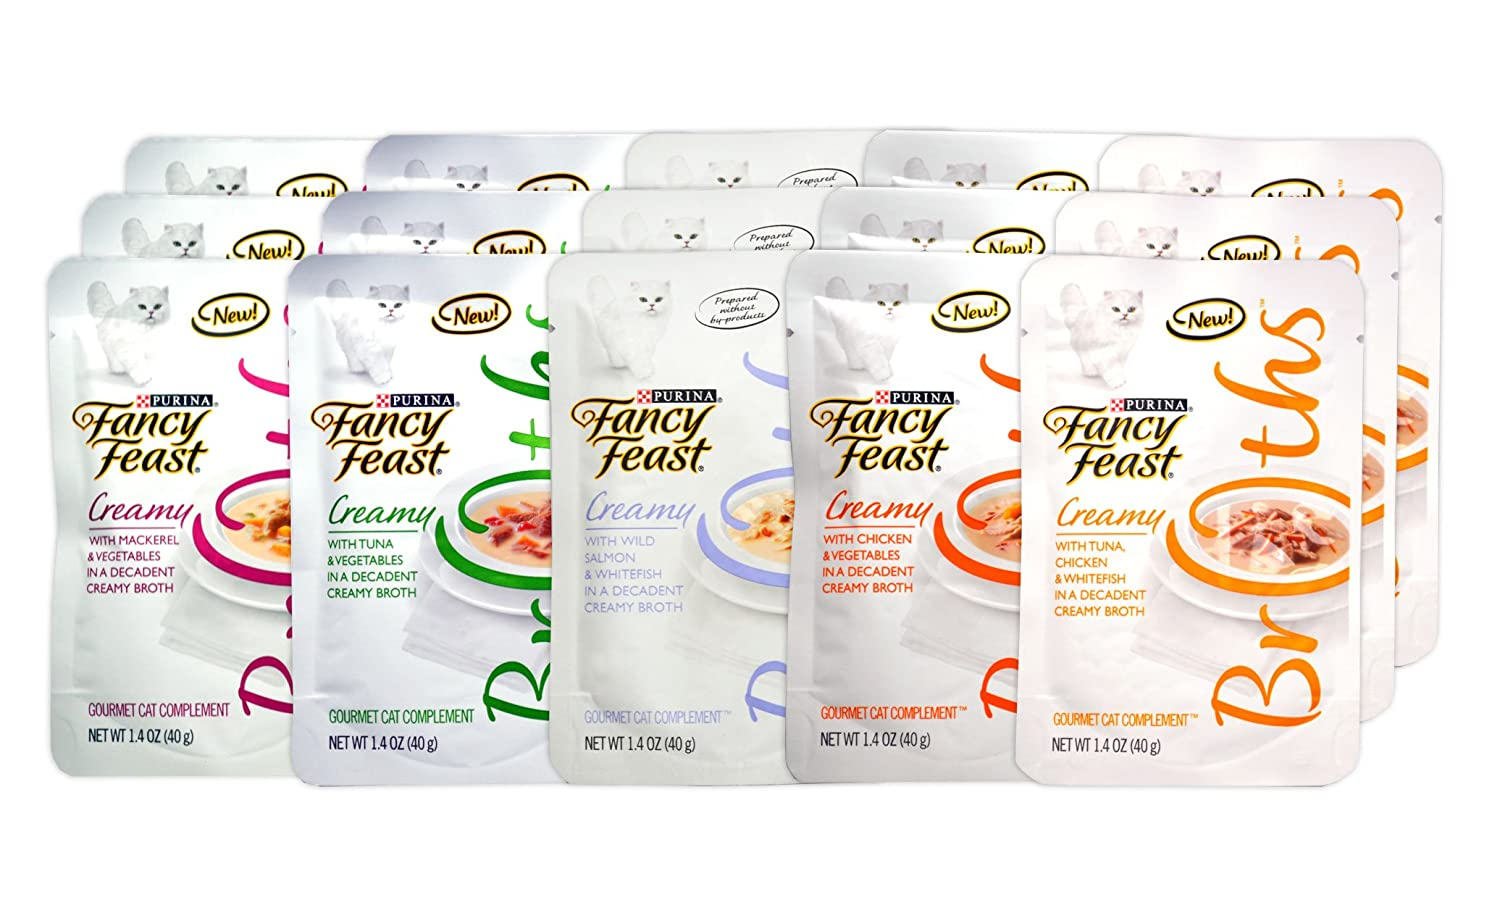 Fancy Feast Gourmet Creamy Bredhs Variety Pack for Cats 5 Creamy Bredh Flavors 1.4 Oz Each (15 Total Pouches)